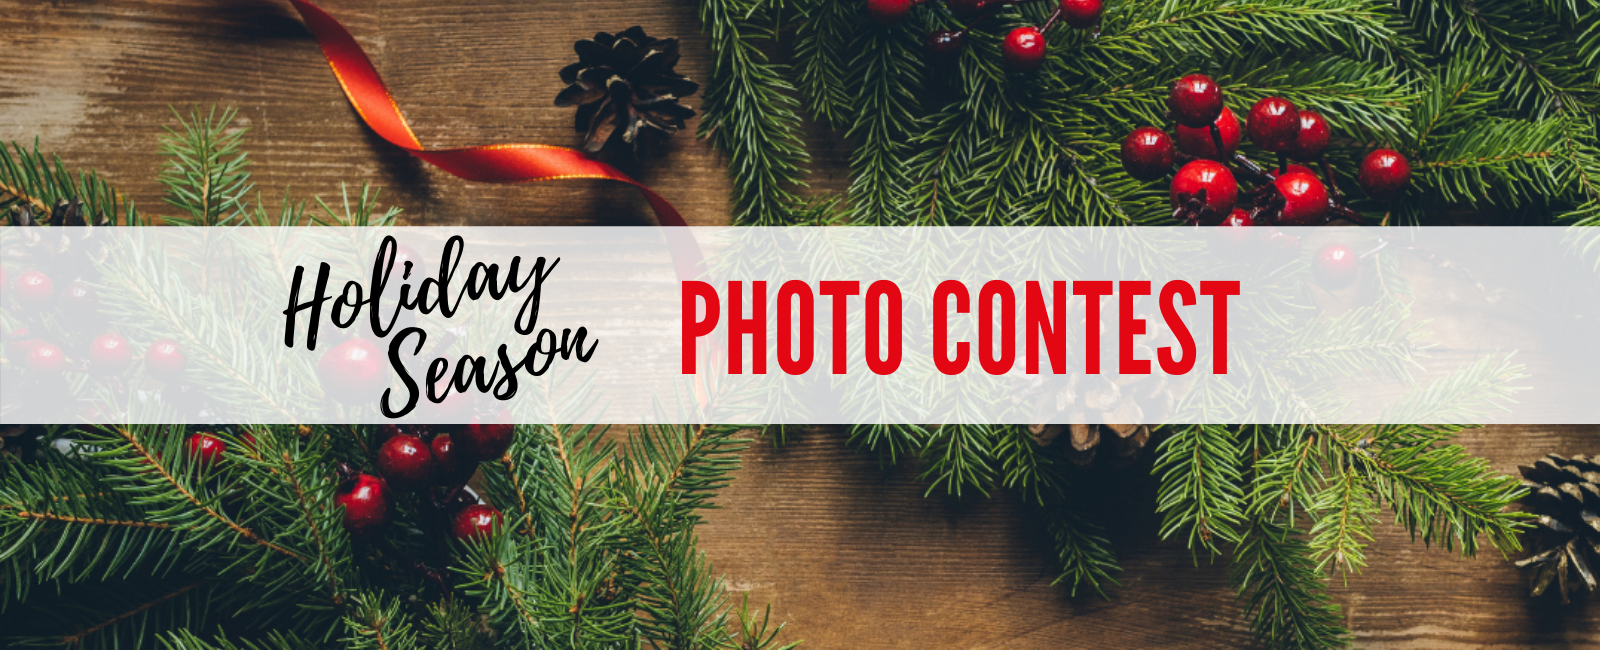 Holiday Season photo contest